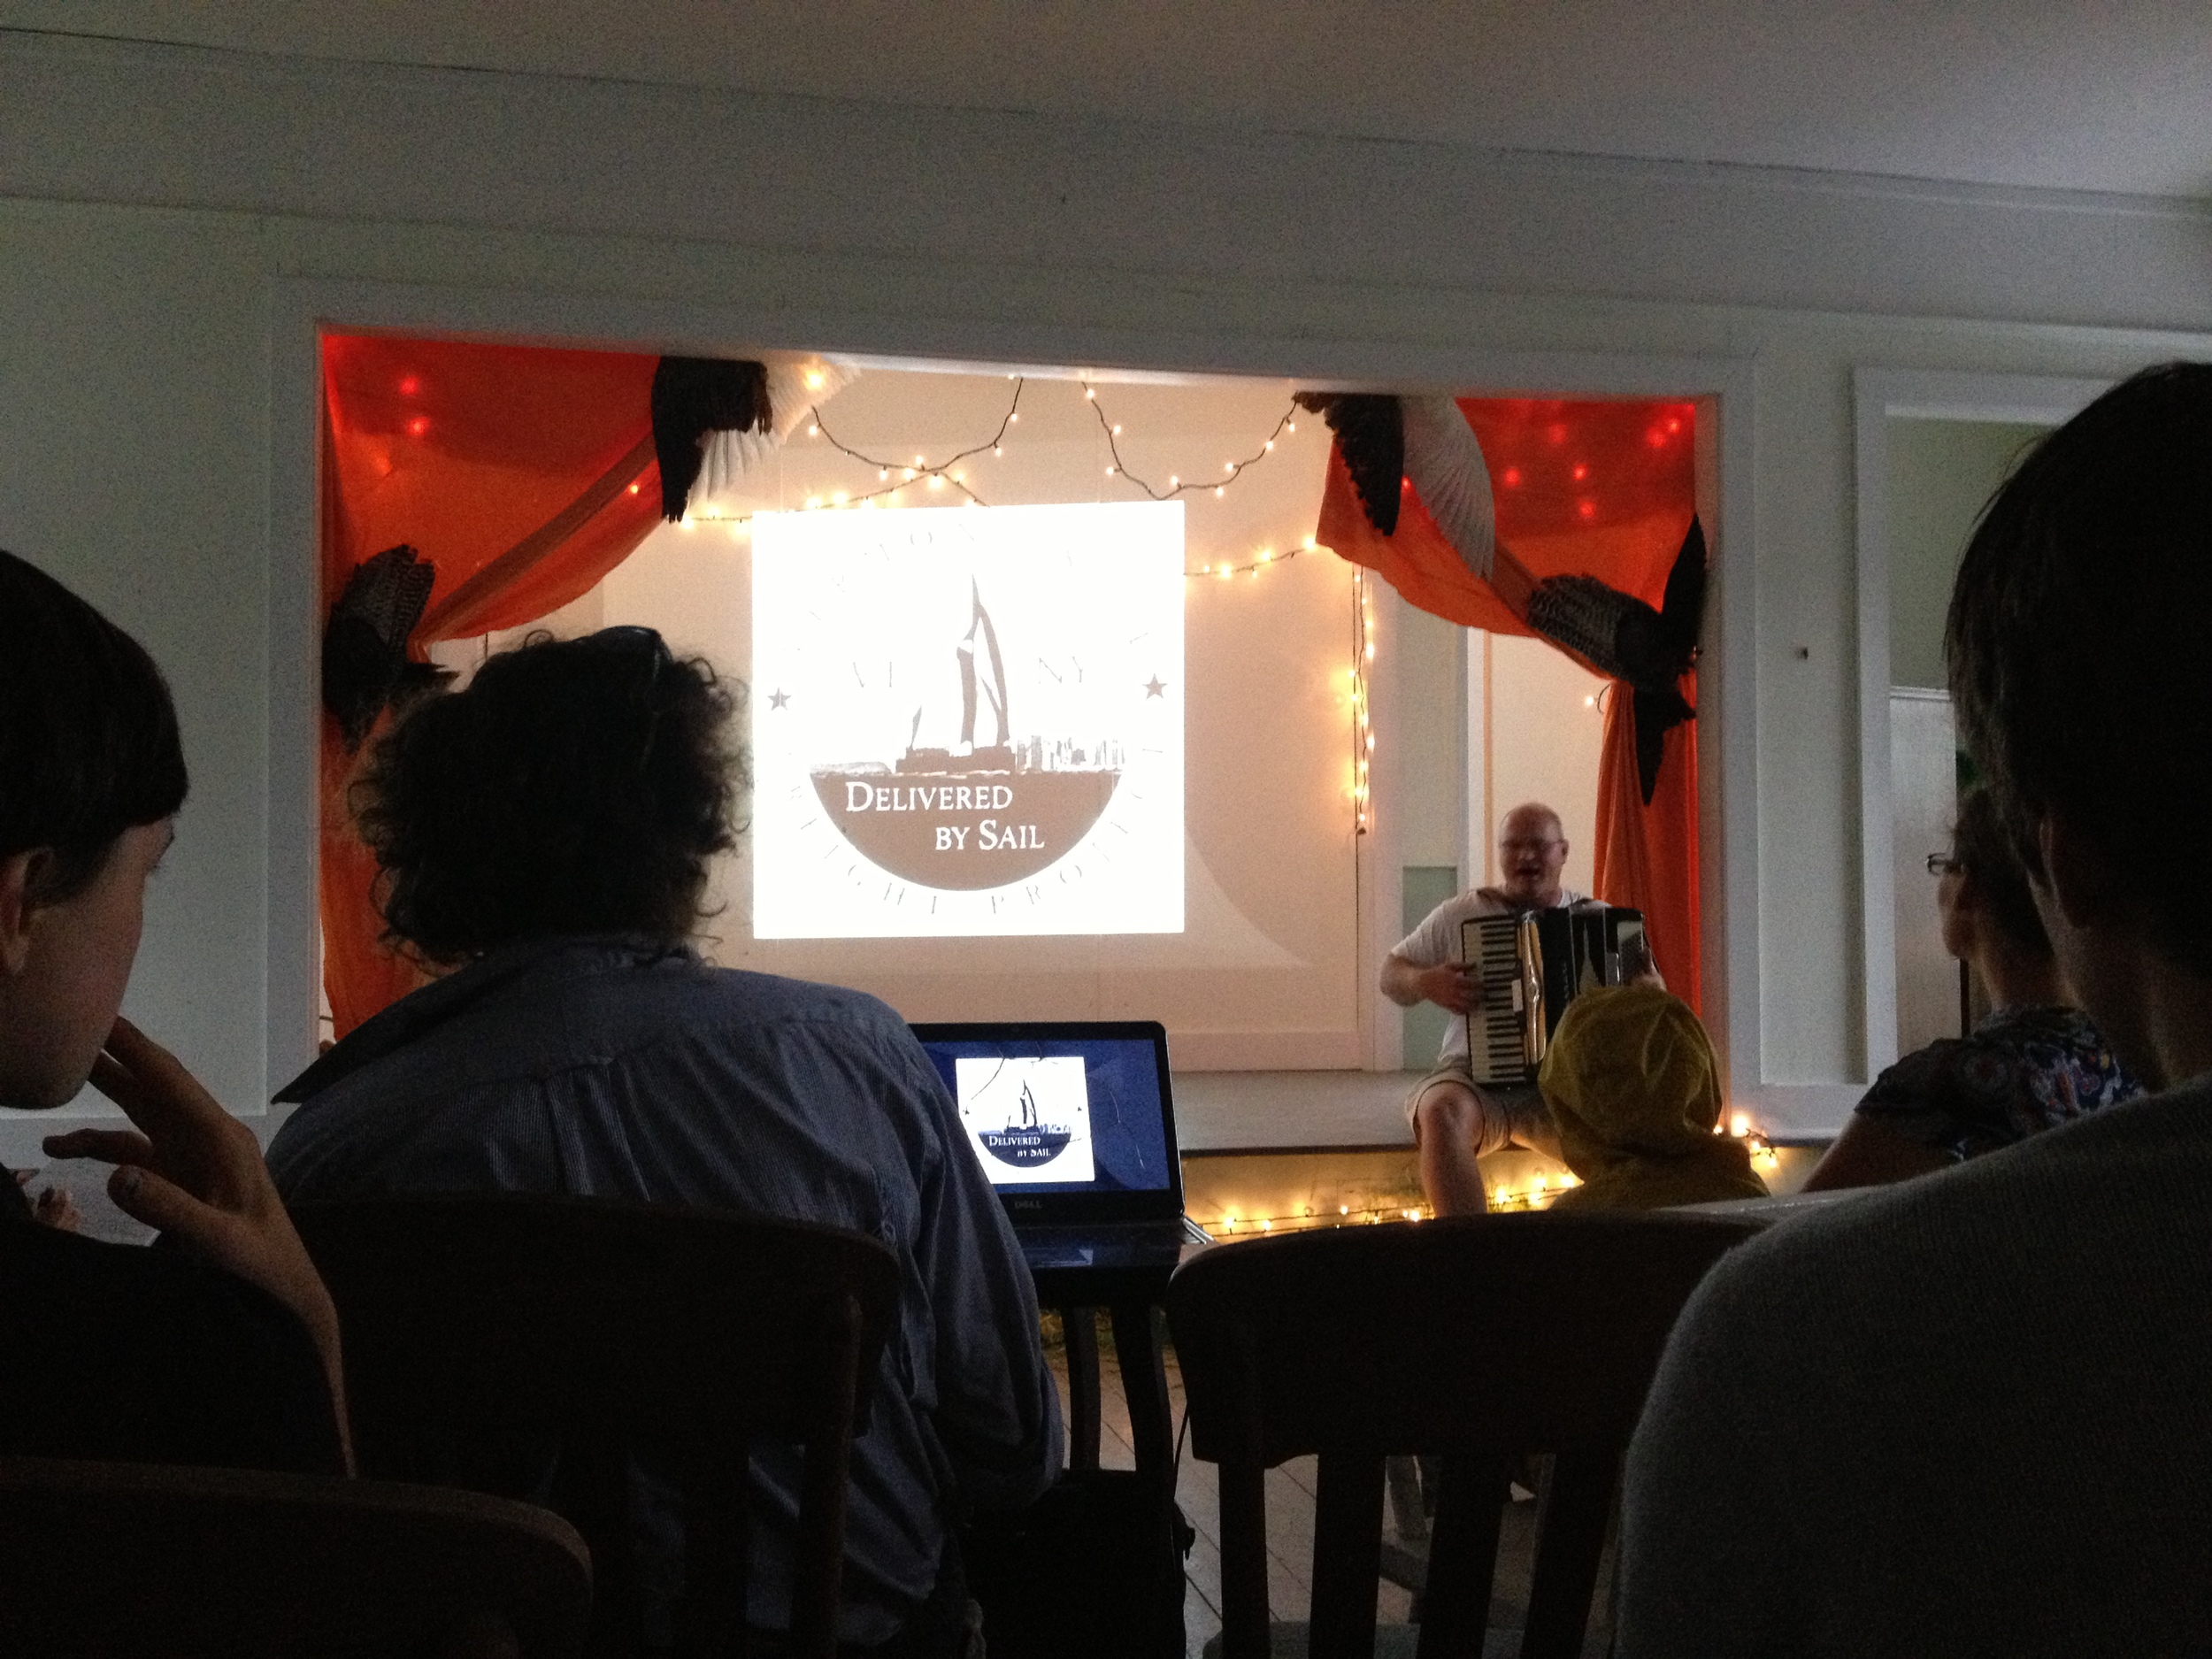 Back at the Ausable Grange, we heard a talk from Eric Andrus (seated with accordion), founder of the  Vermont Sail Freight Project . His vision is to have a fleet farmer-owned sail-powered barges moving goods from farms up around Lake Champlain down the Hudson to markets in New York City. He's currently finishing construction on the first barge, which will launch in July and have its maiden voyage in September. Each barge can be manned by two people, will carry about 10 tons (including pallets), and will take about ten days each way.